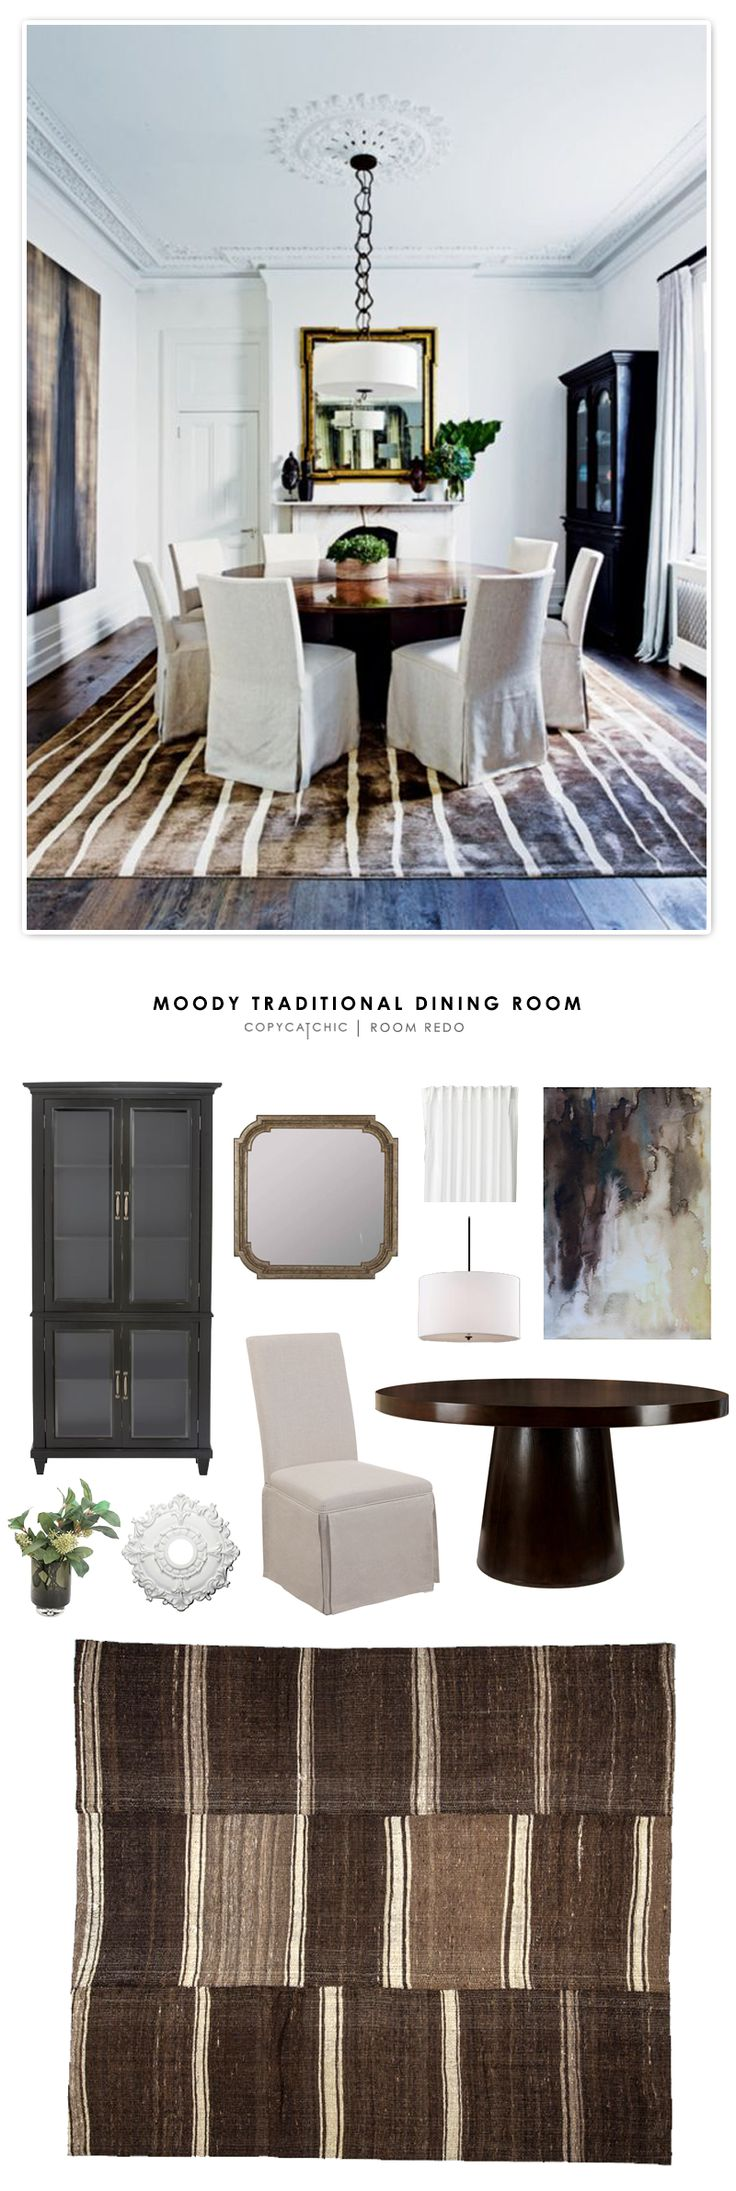 Copy Cat Chic Room Redo   Moody Traditional Dining Room     Copy Cat Chic   chic for cheap   Bloglovin'